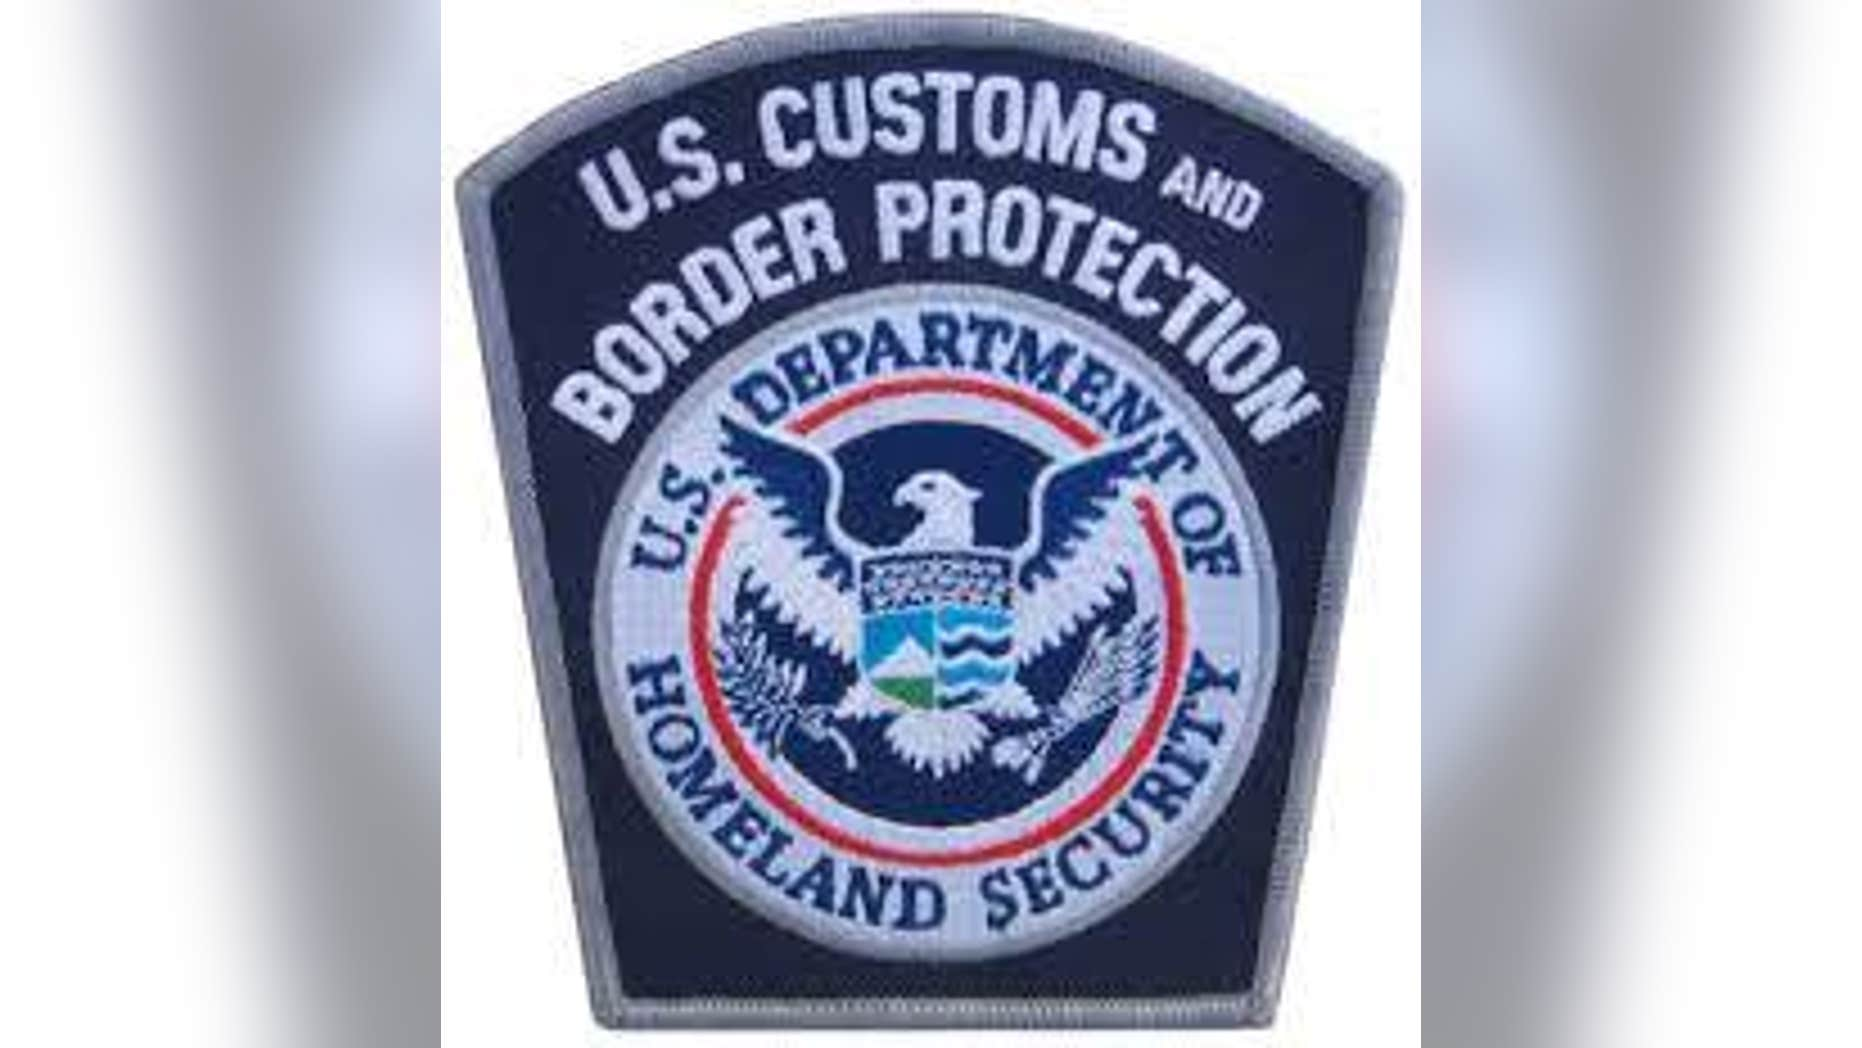 Tuesday's arrests were handled by U.S. Customs and Border Protection officers, authorities said.